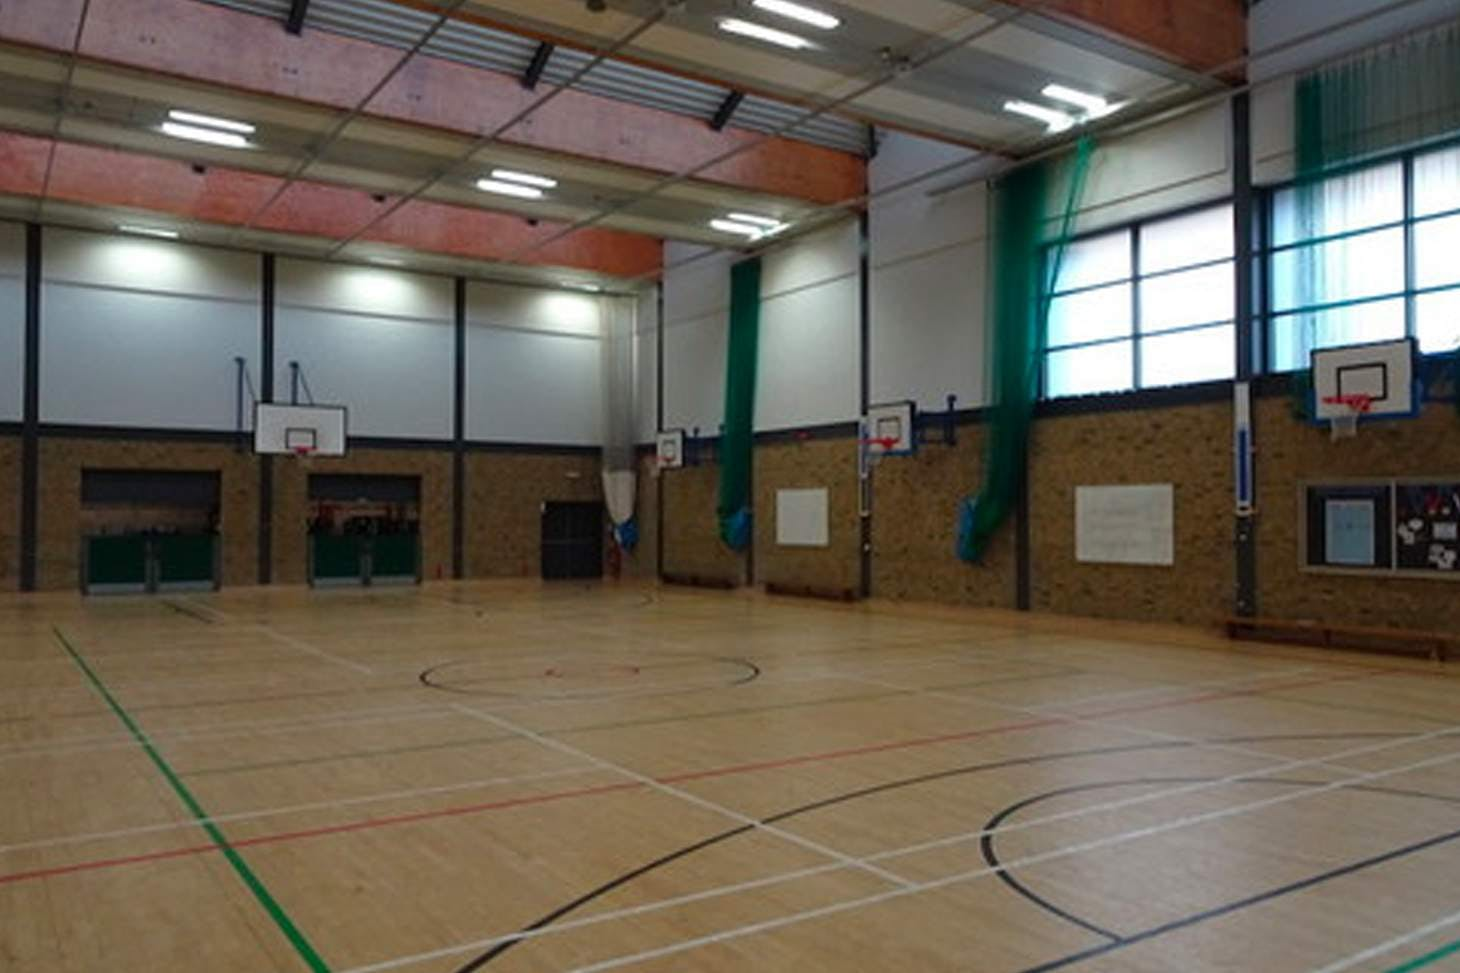 Whitechapel Indoor Pitch Court | Sports hall netball court